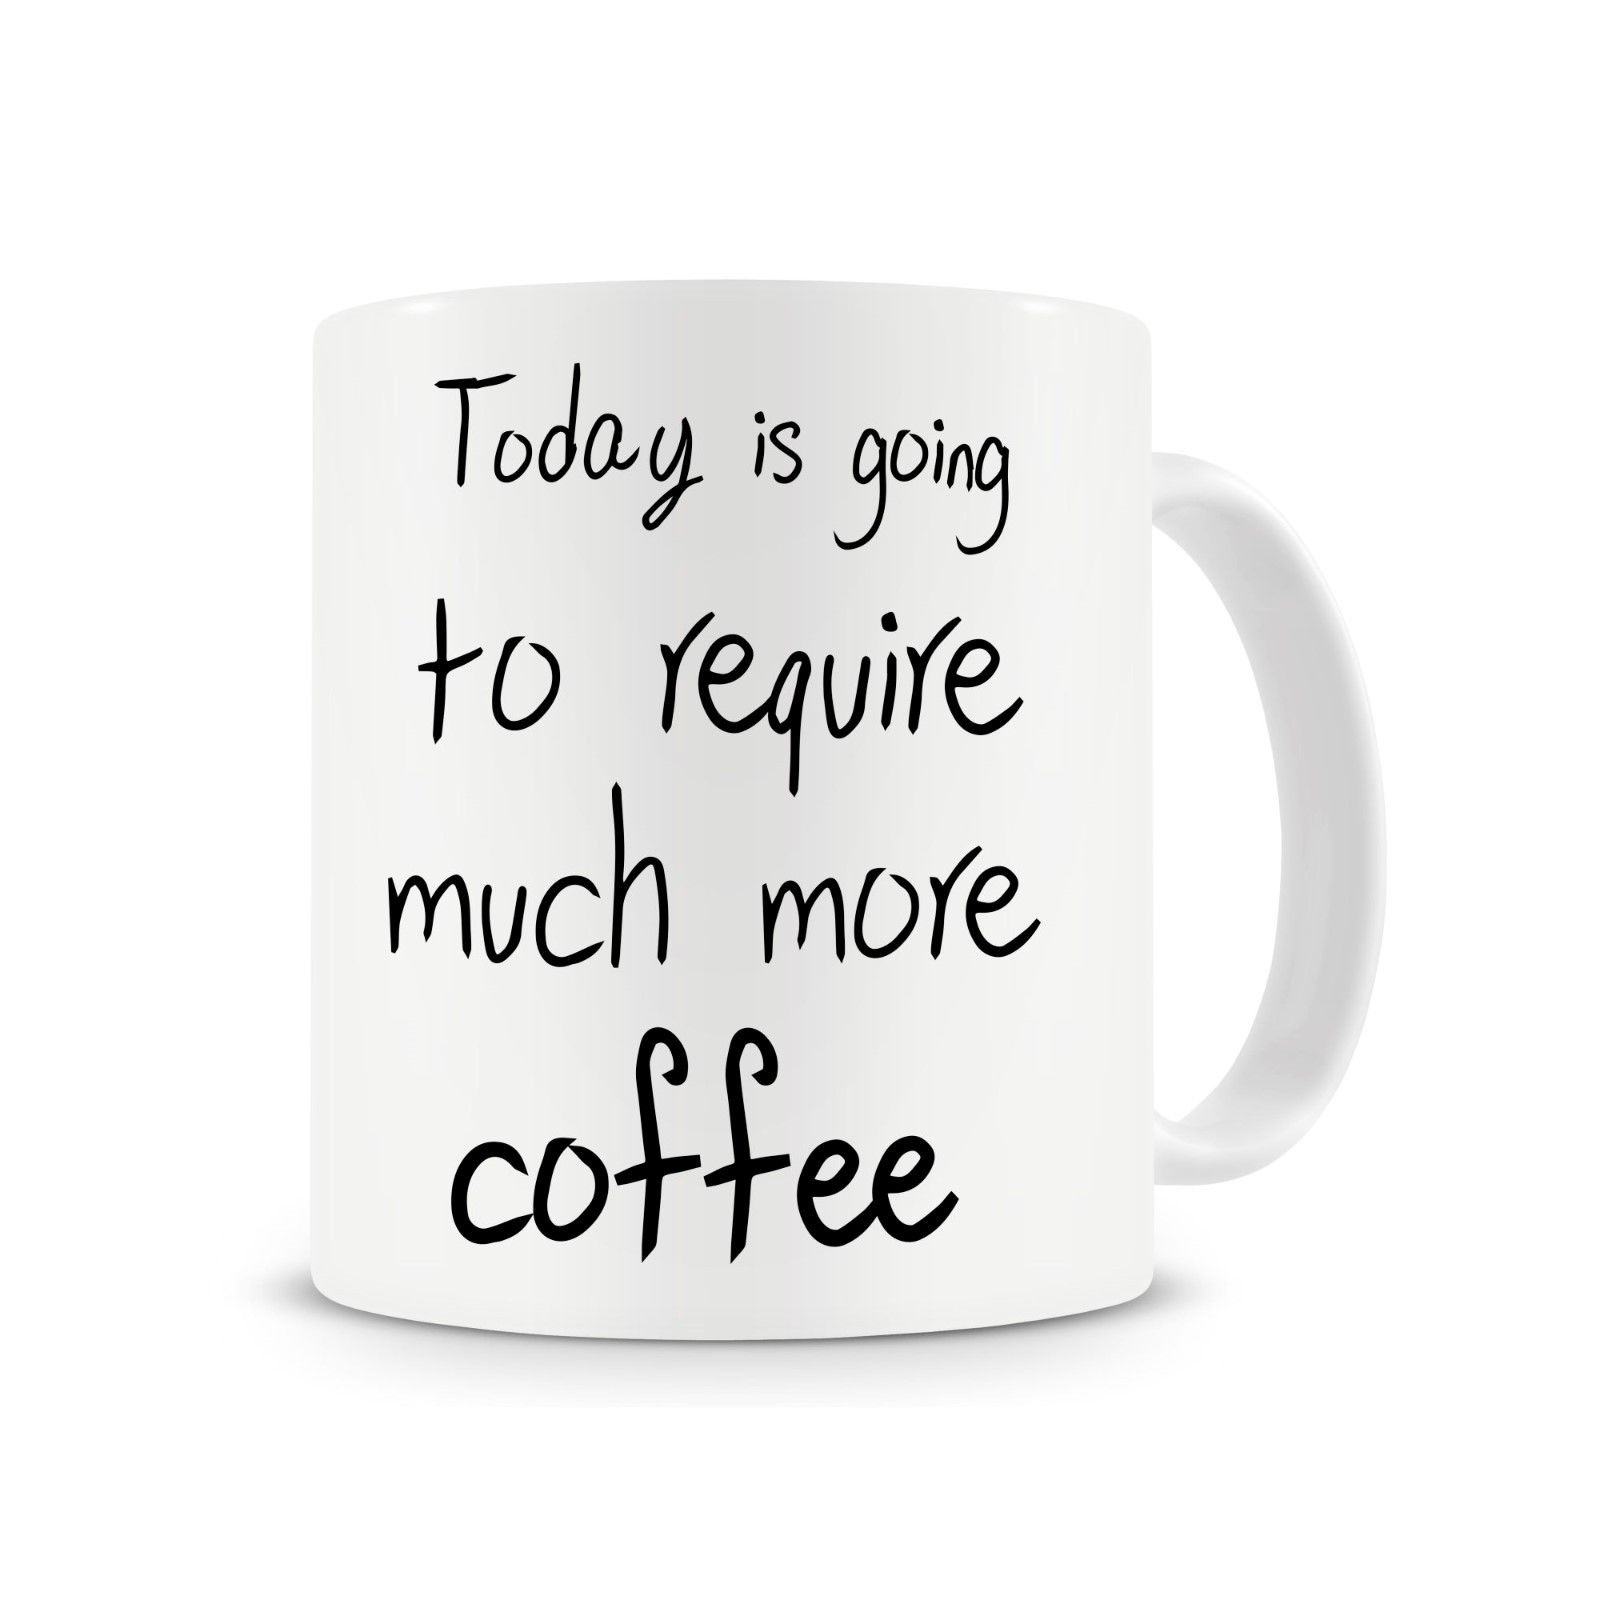 Today Is Going.. Funny Coffee Mug Morning Coffee Cup with Stirring Spoon image